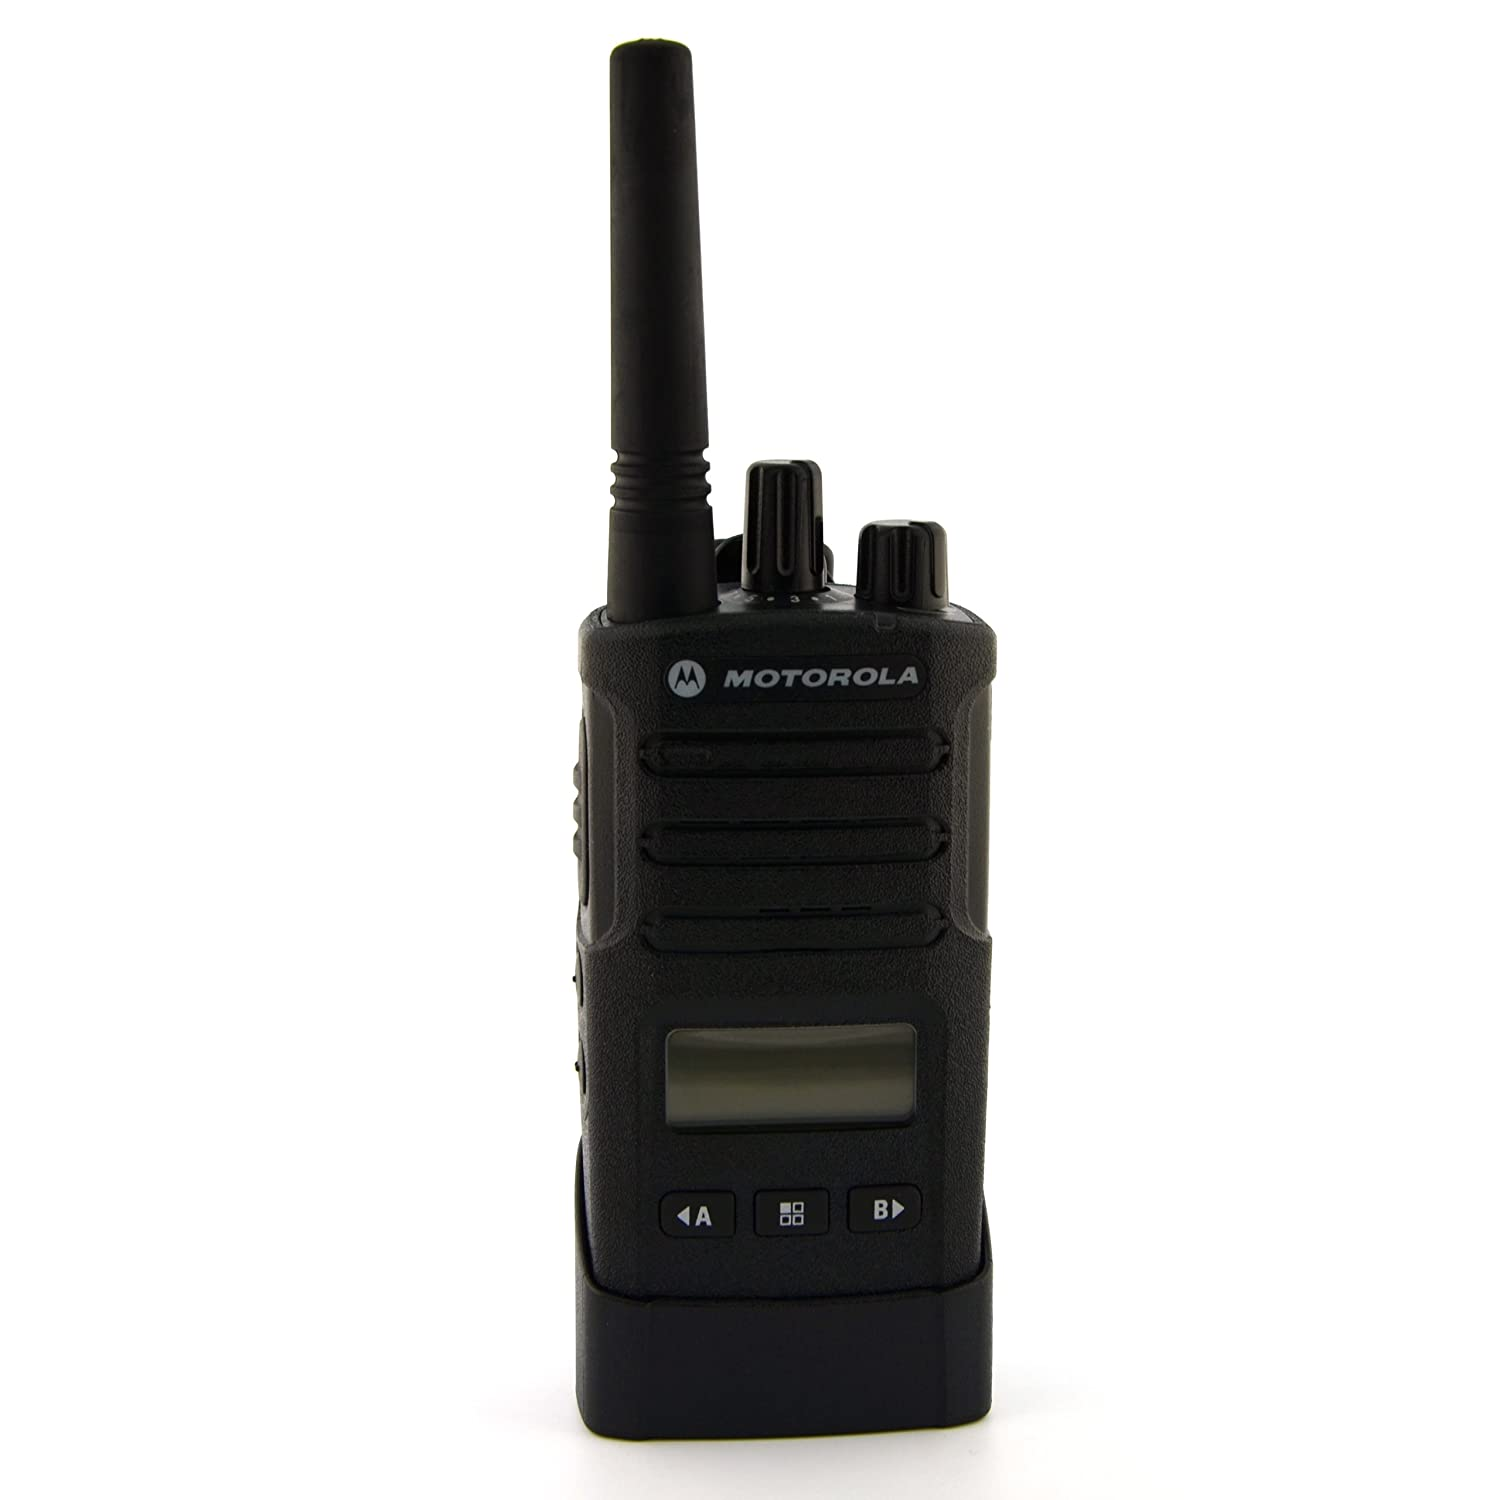 Best Gmrs Radio 2020 Amazon.com: Motorola RMU2080D On Site 8 Channel UHF Rugged Two Way